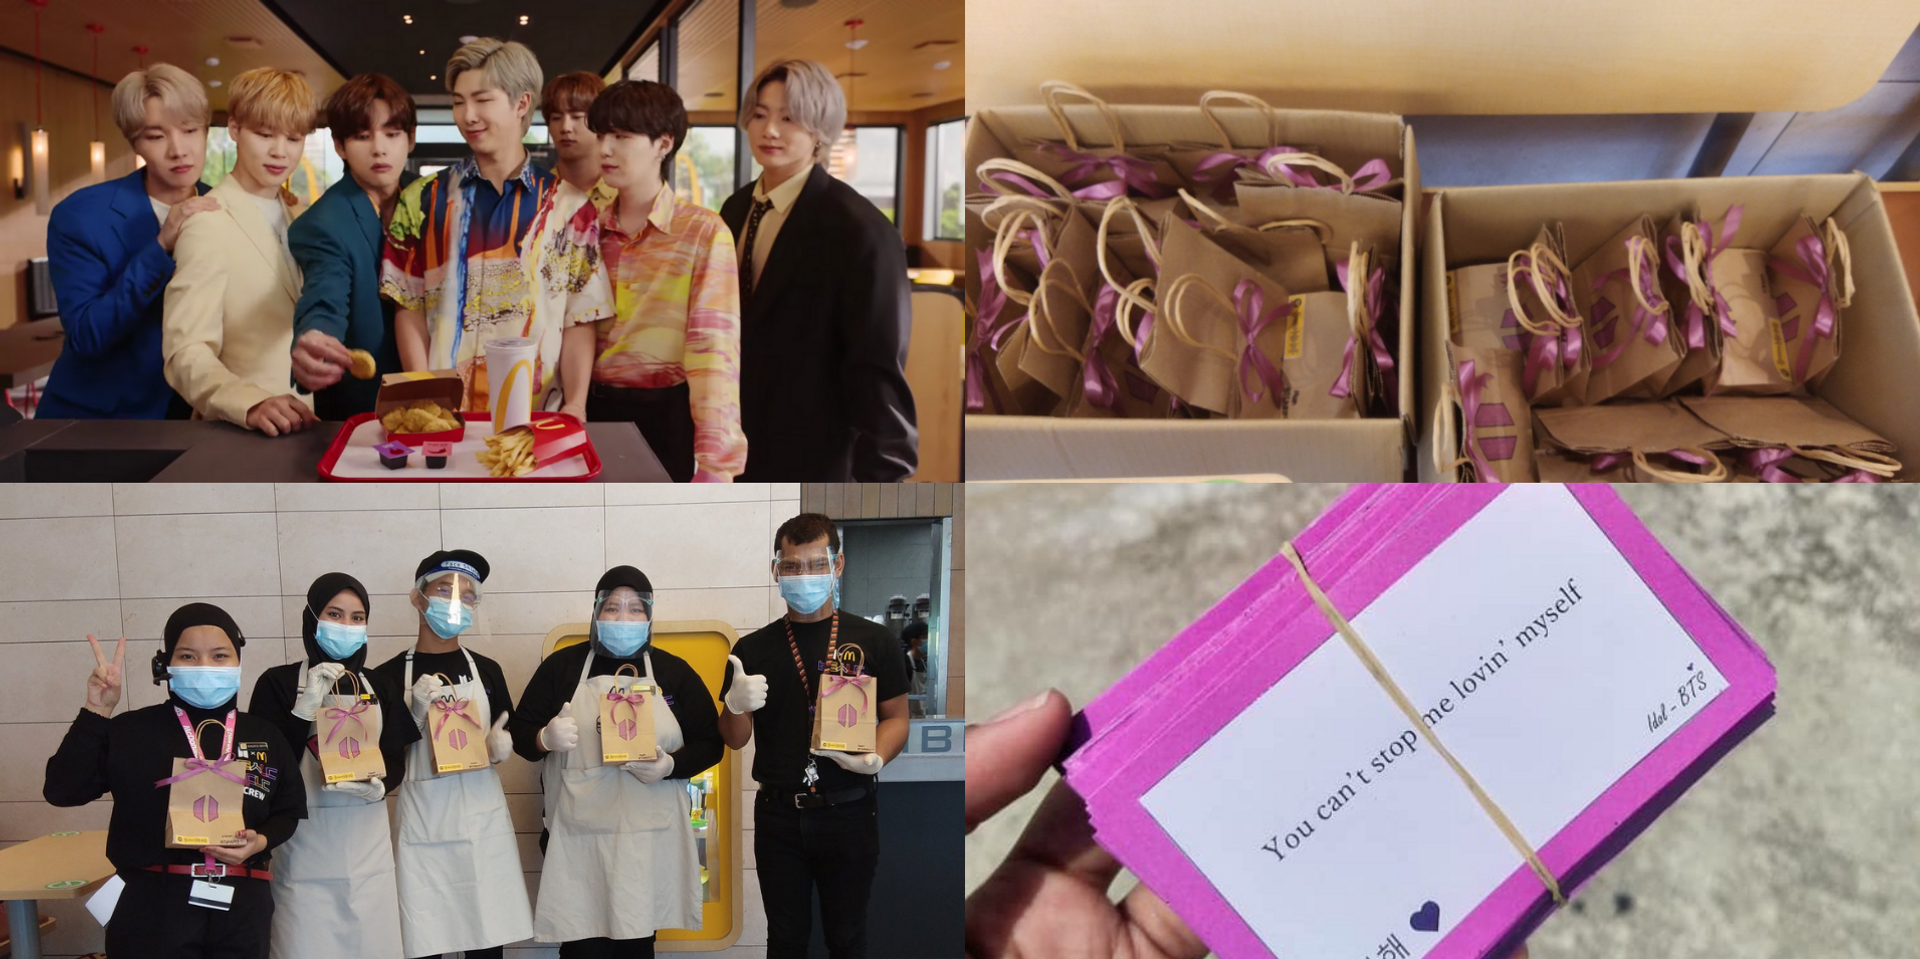 The BTS Meal is out now in Malaysia, ARMY send snacks to thank McDonald's crew